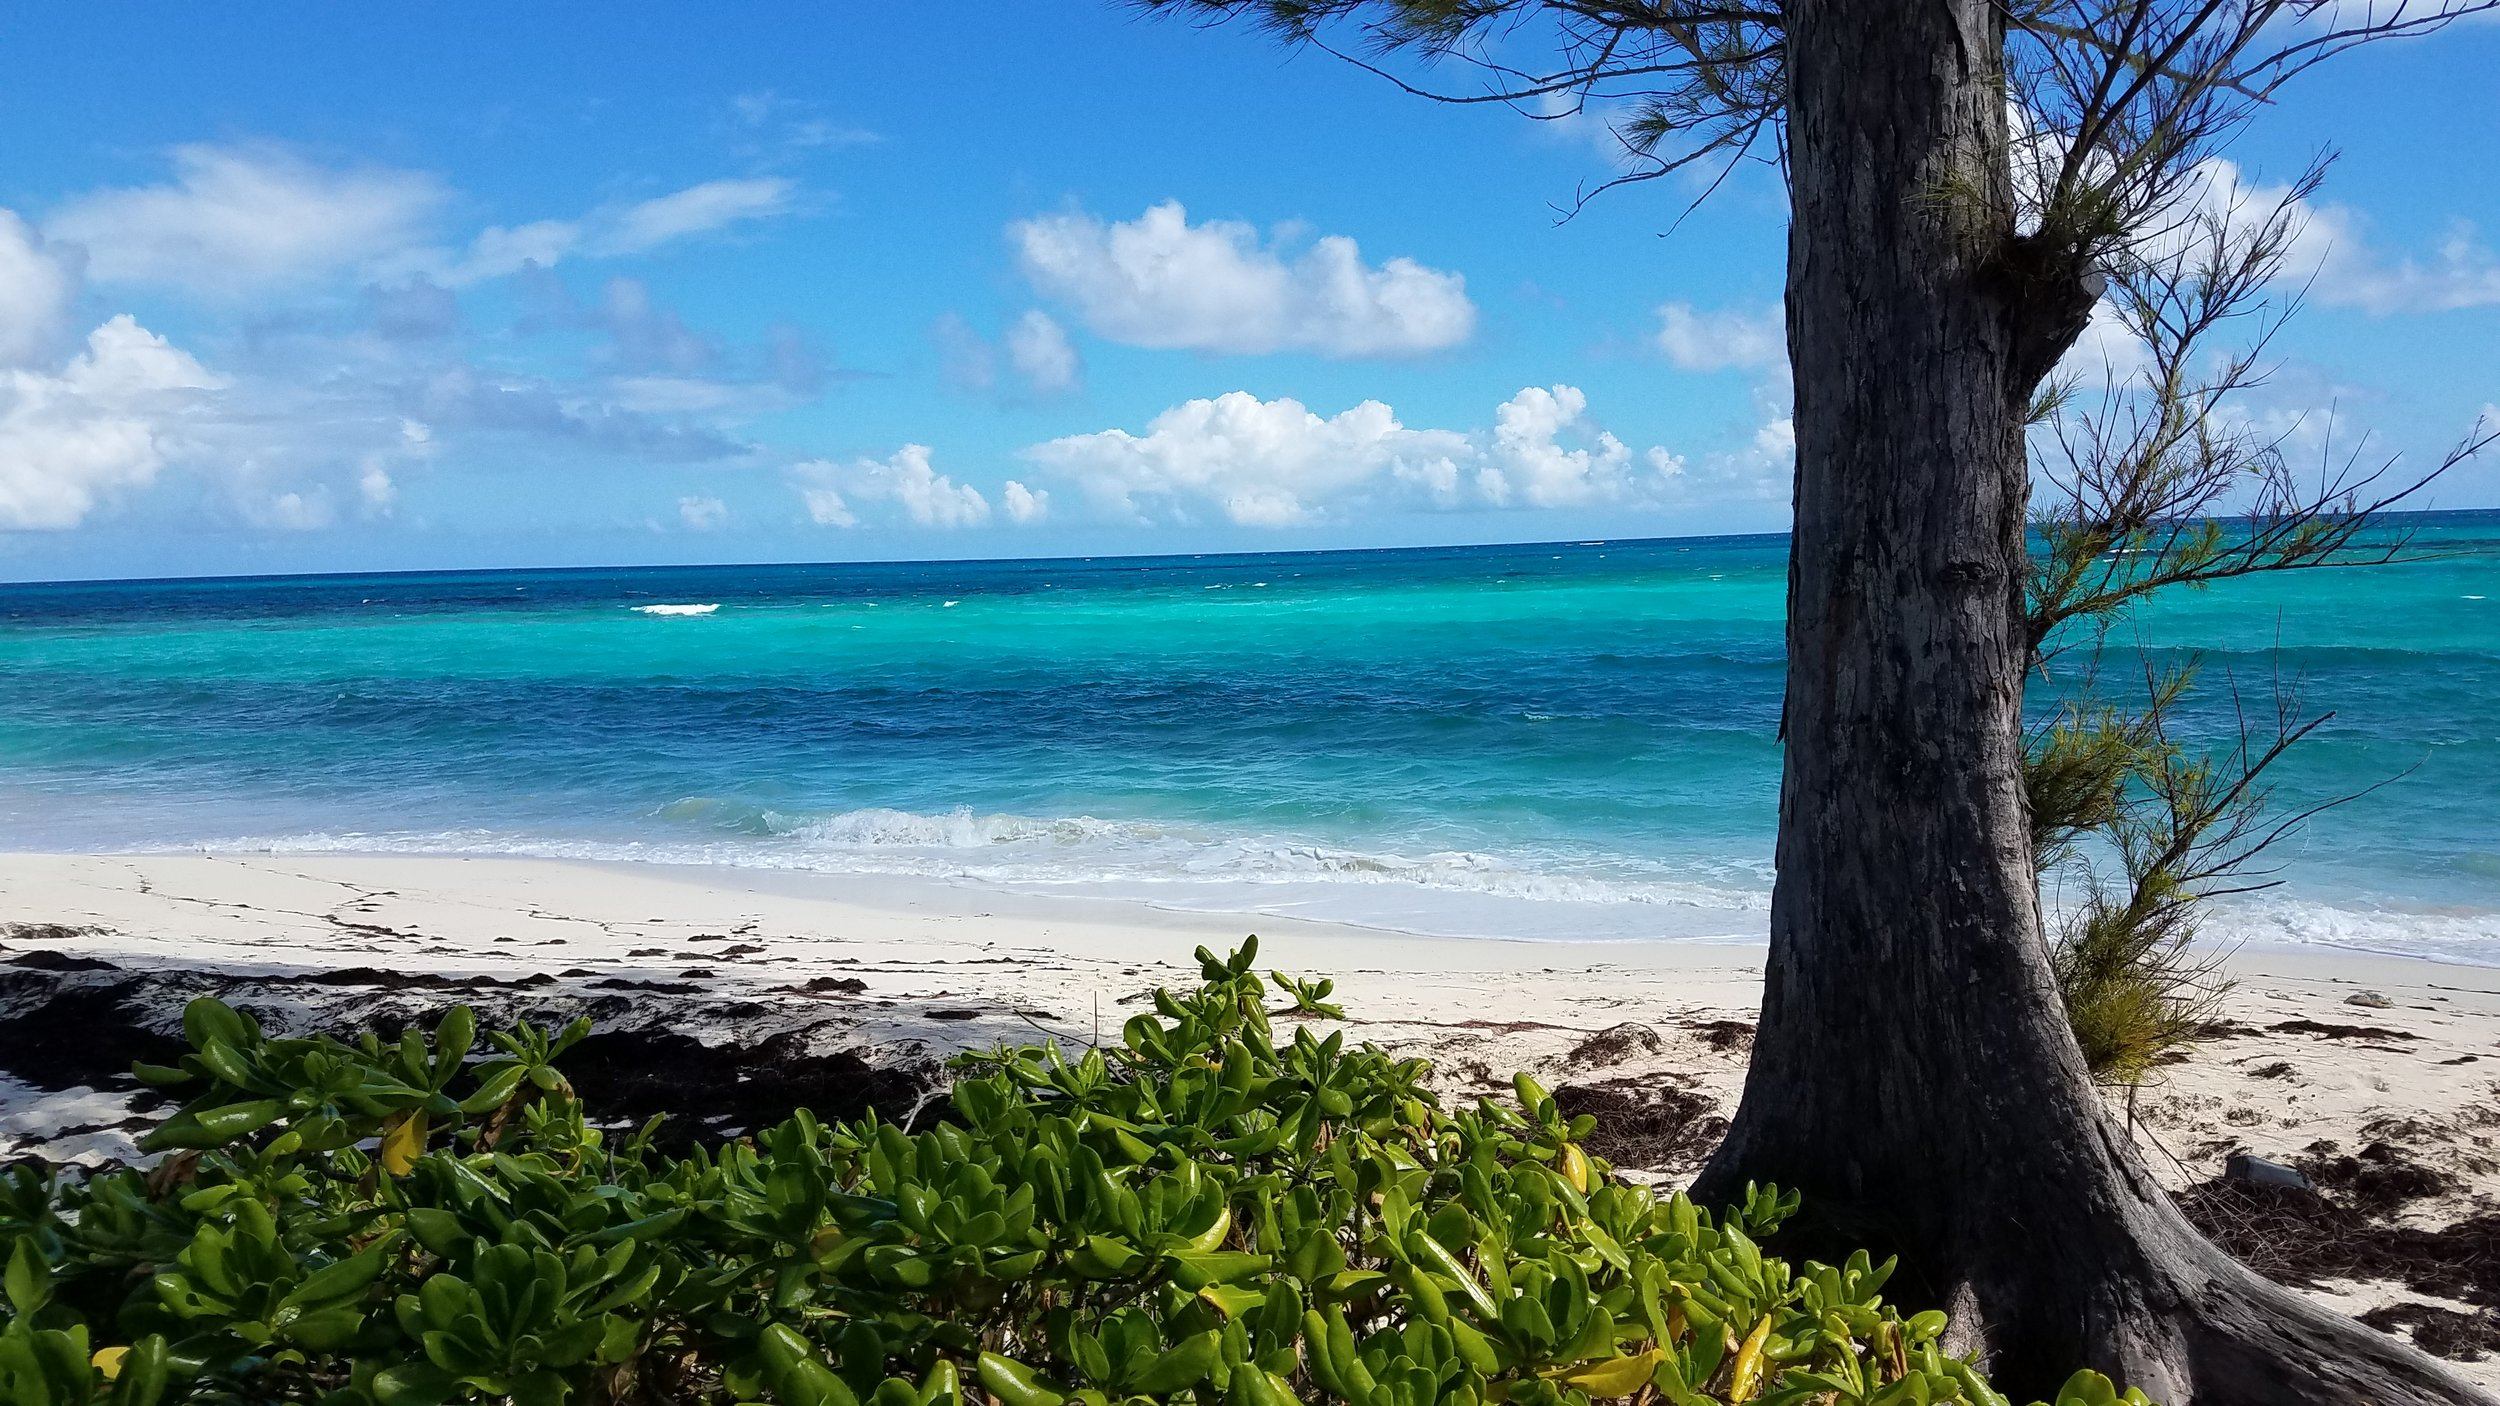 The beach where the bottle landed at Green Turtle Cay